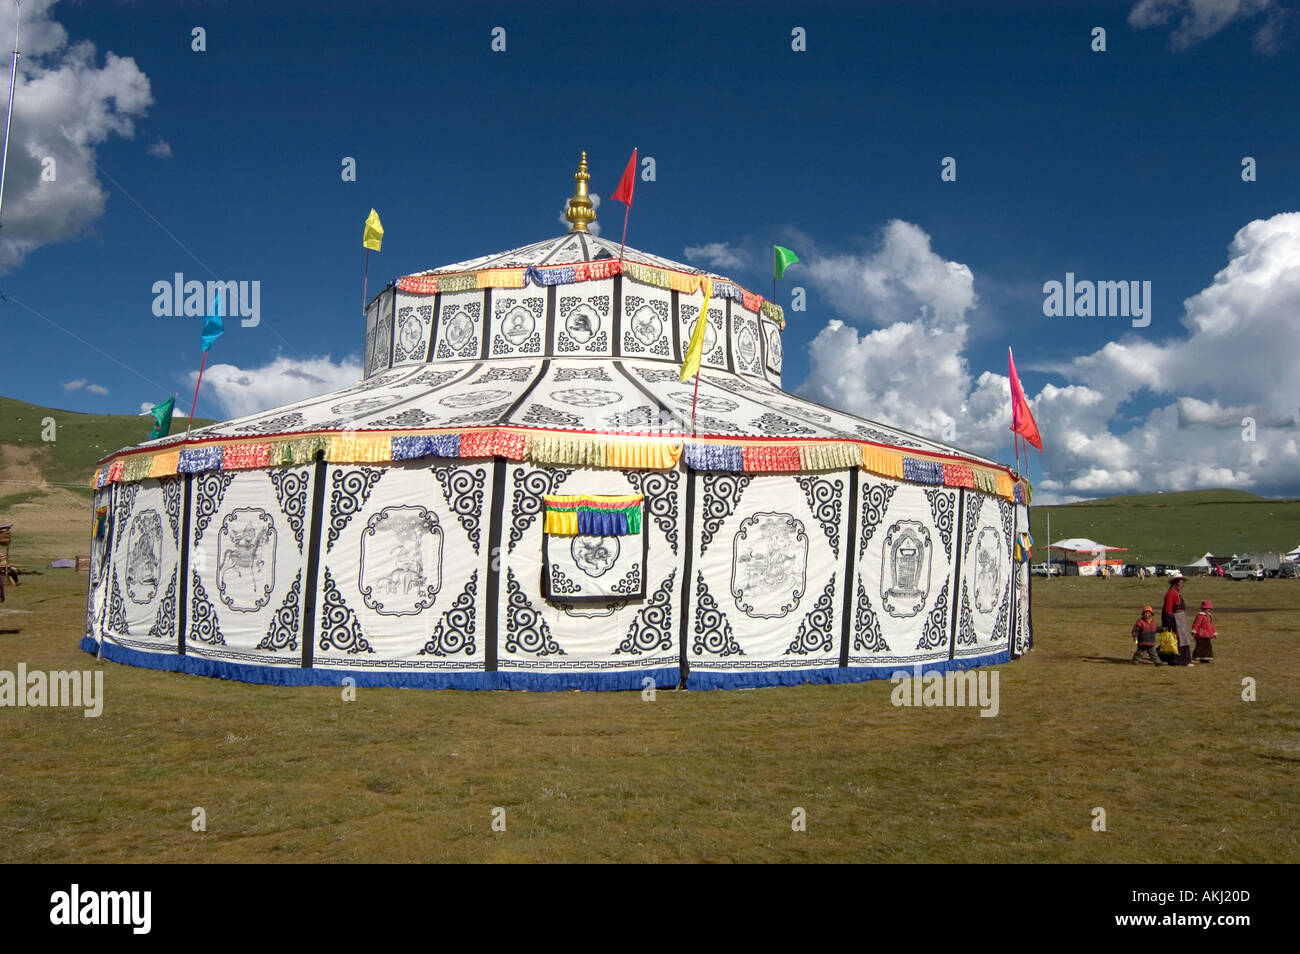 Tibetan tents with Buddhist designs are used for accomadation Litang Horse Festival in Kham Sichuan Province China Tibet  - Stock Image